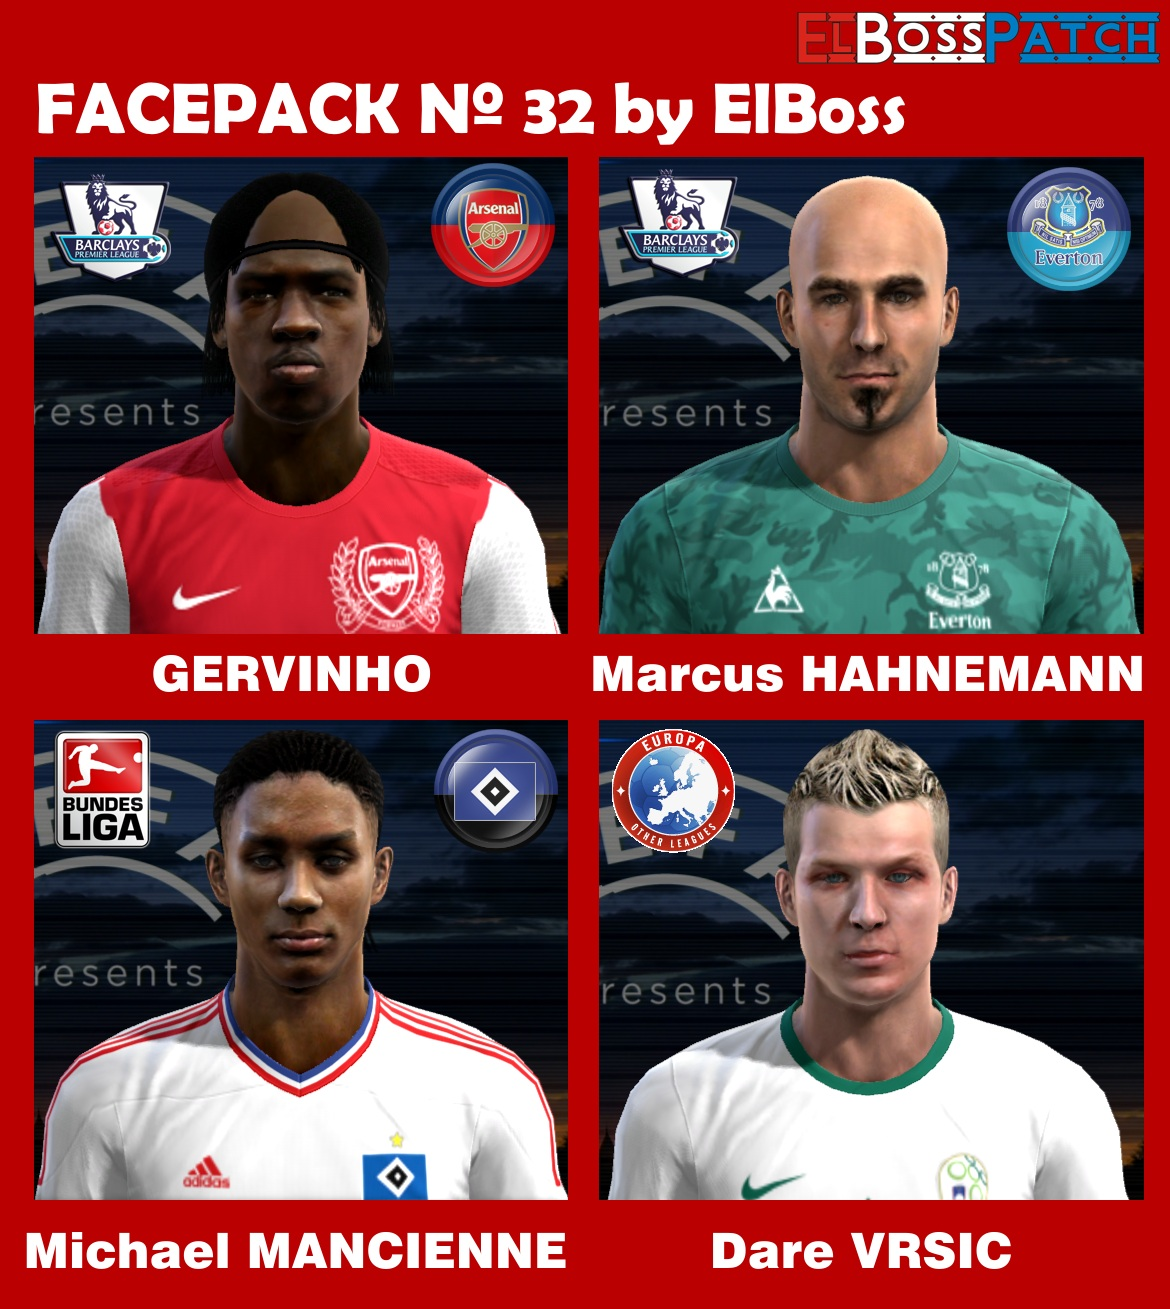 Faces Pack V32 by ElBoss